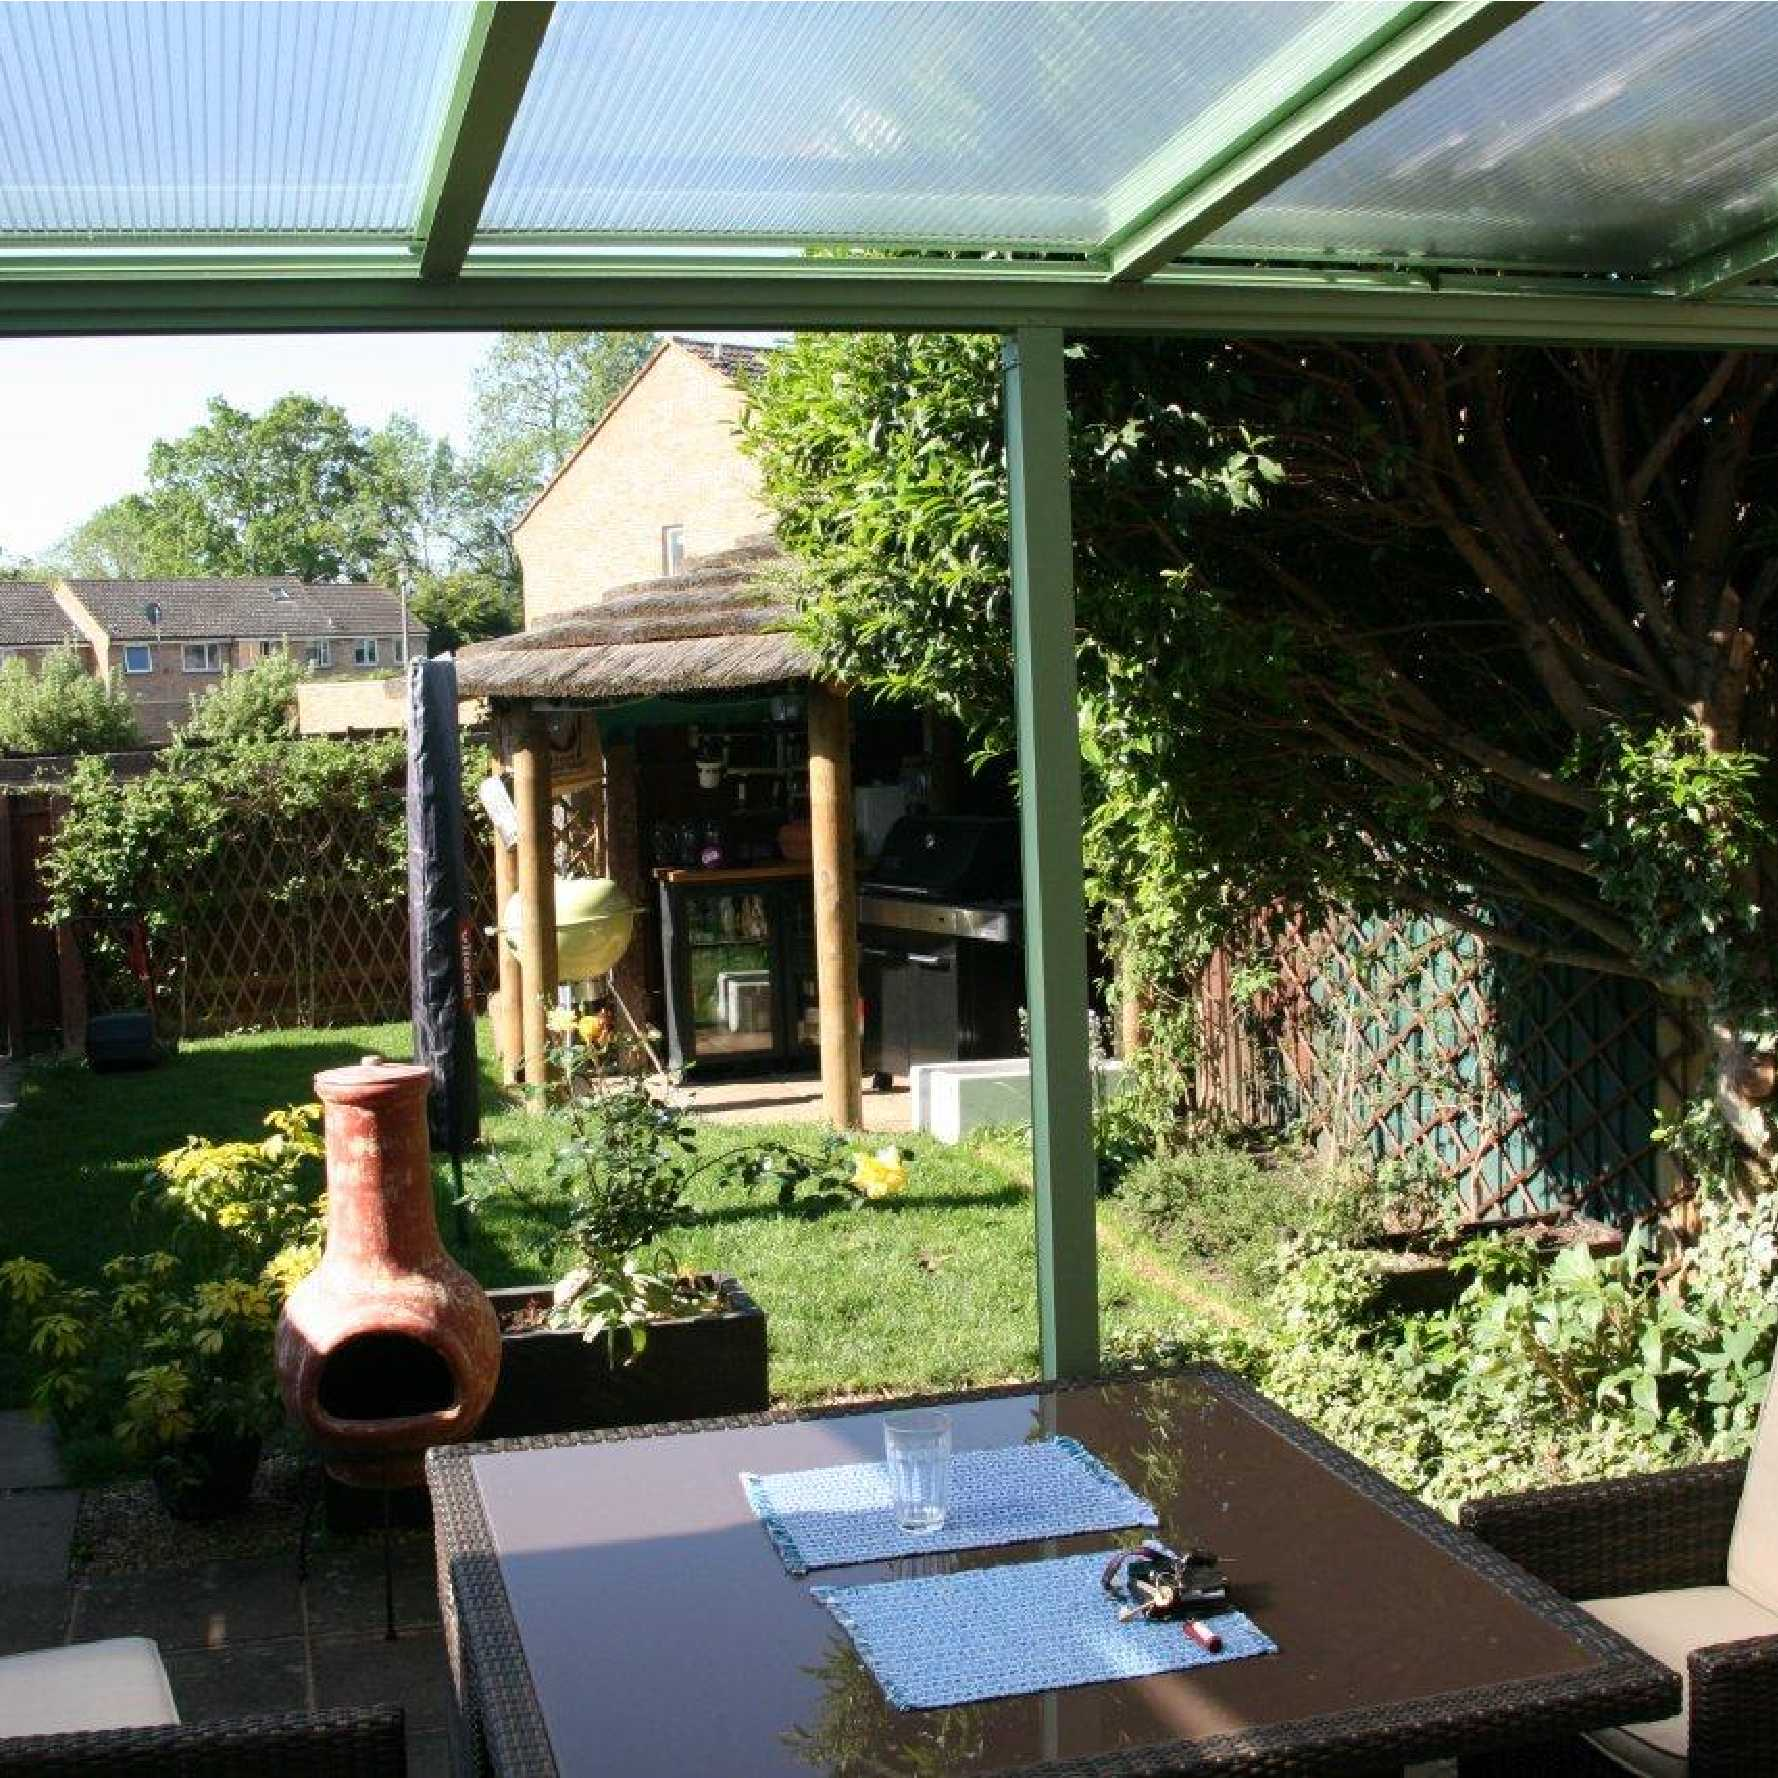 Affordable Omega Smart White Lean-To Canopy with 16mm Polycarbonate Glazing - 6.3m (W) x 1.5m (P), (4) Supporting Posts